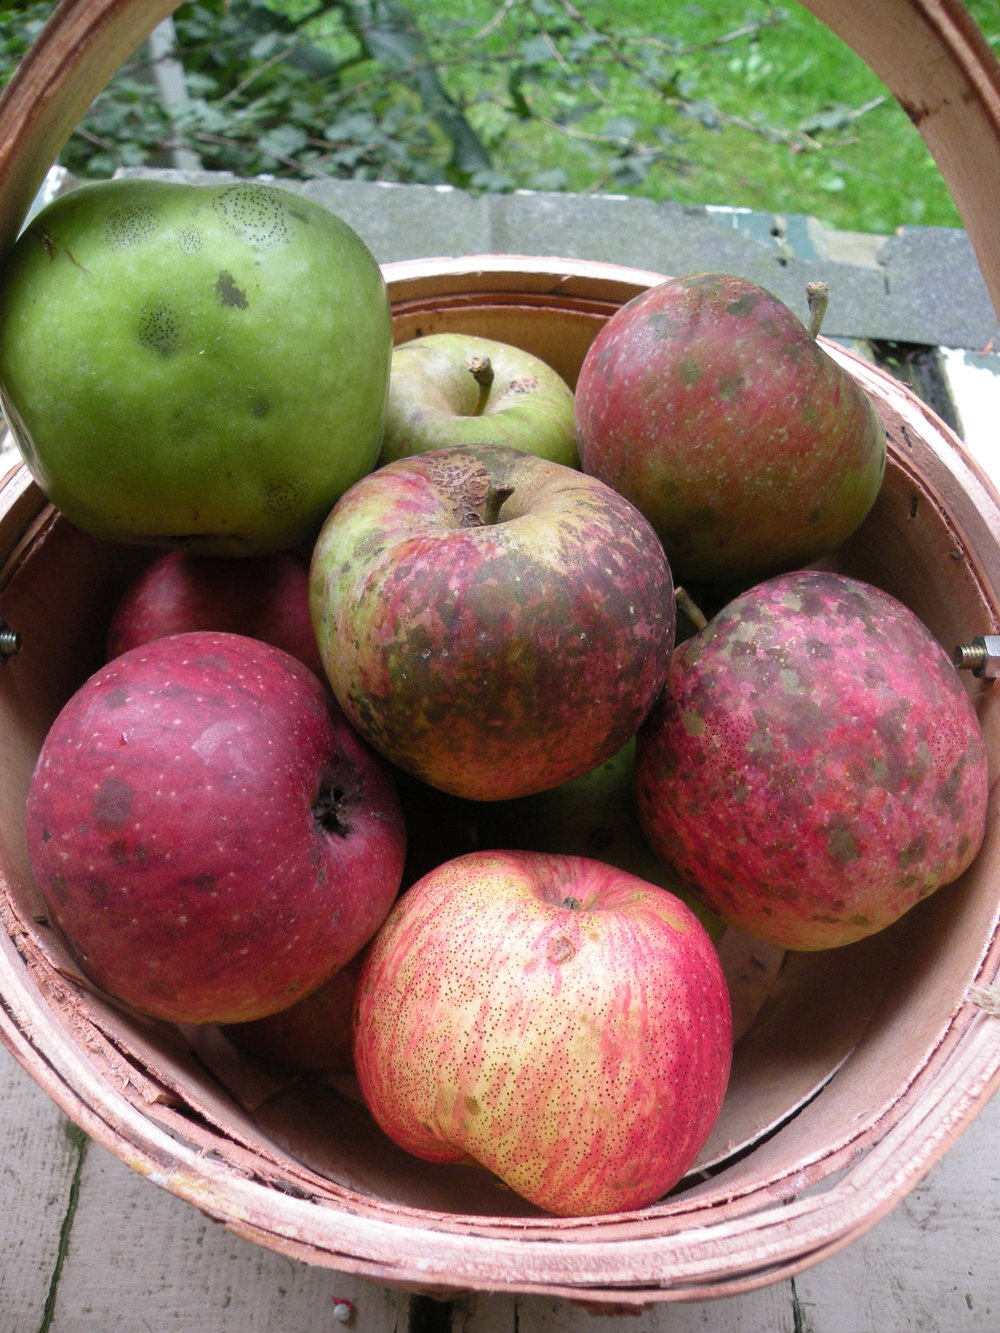 mixed basket of heirloom apples 9 - 25 = 16.jpg